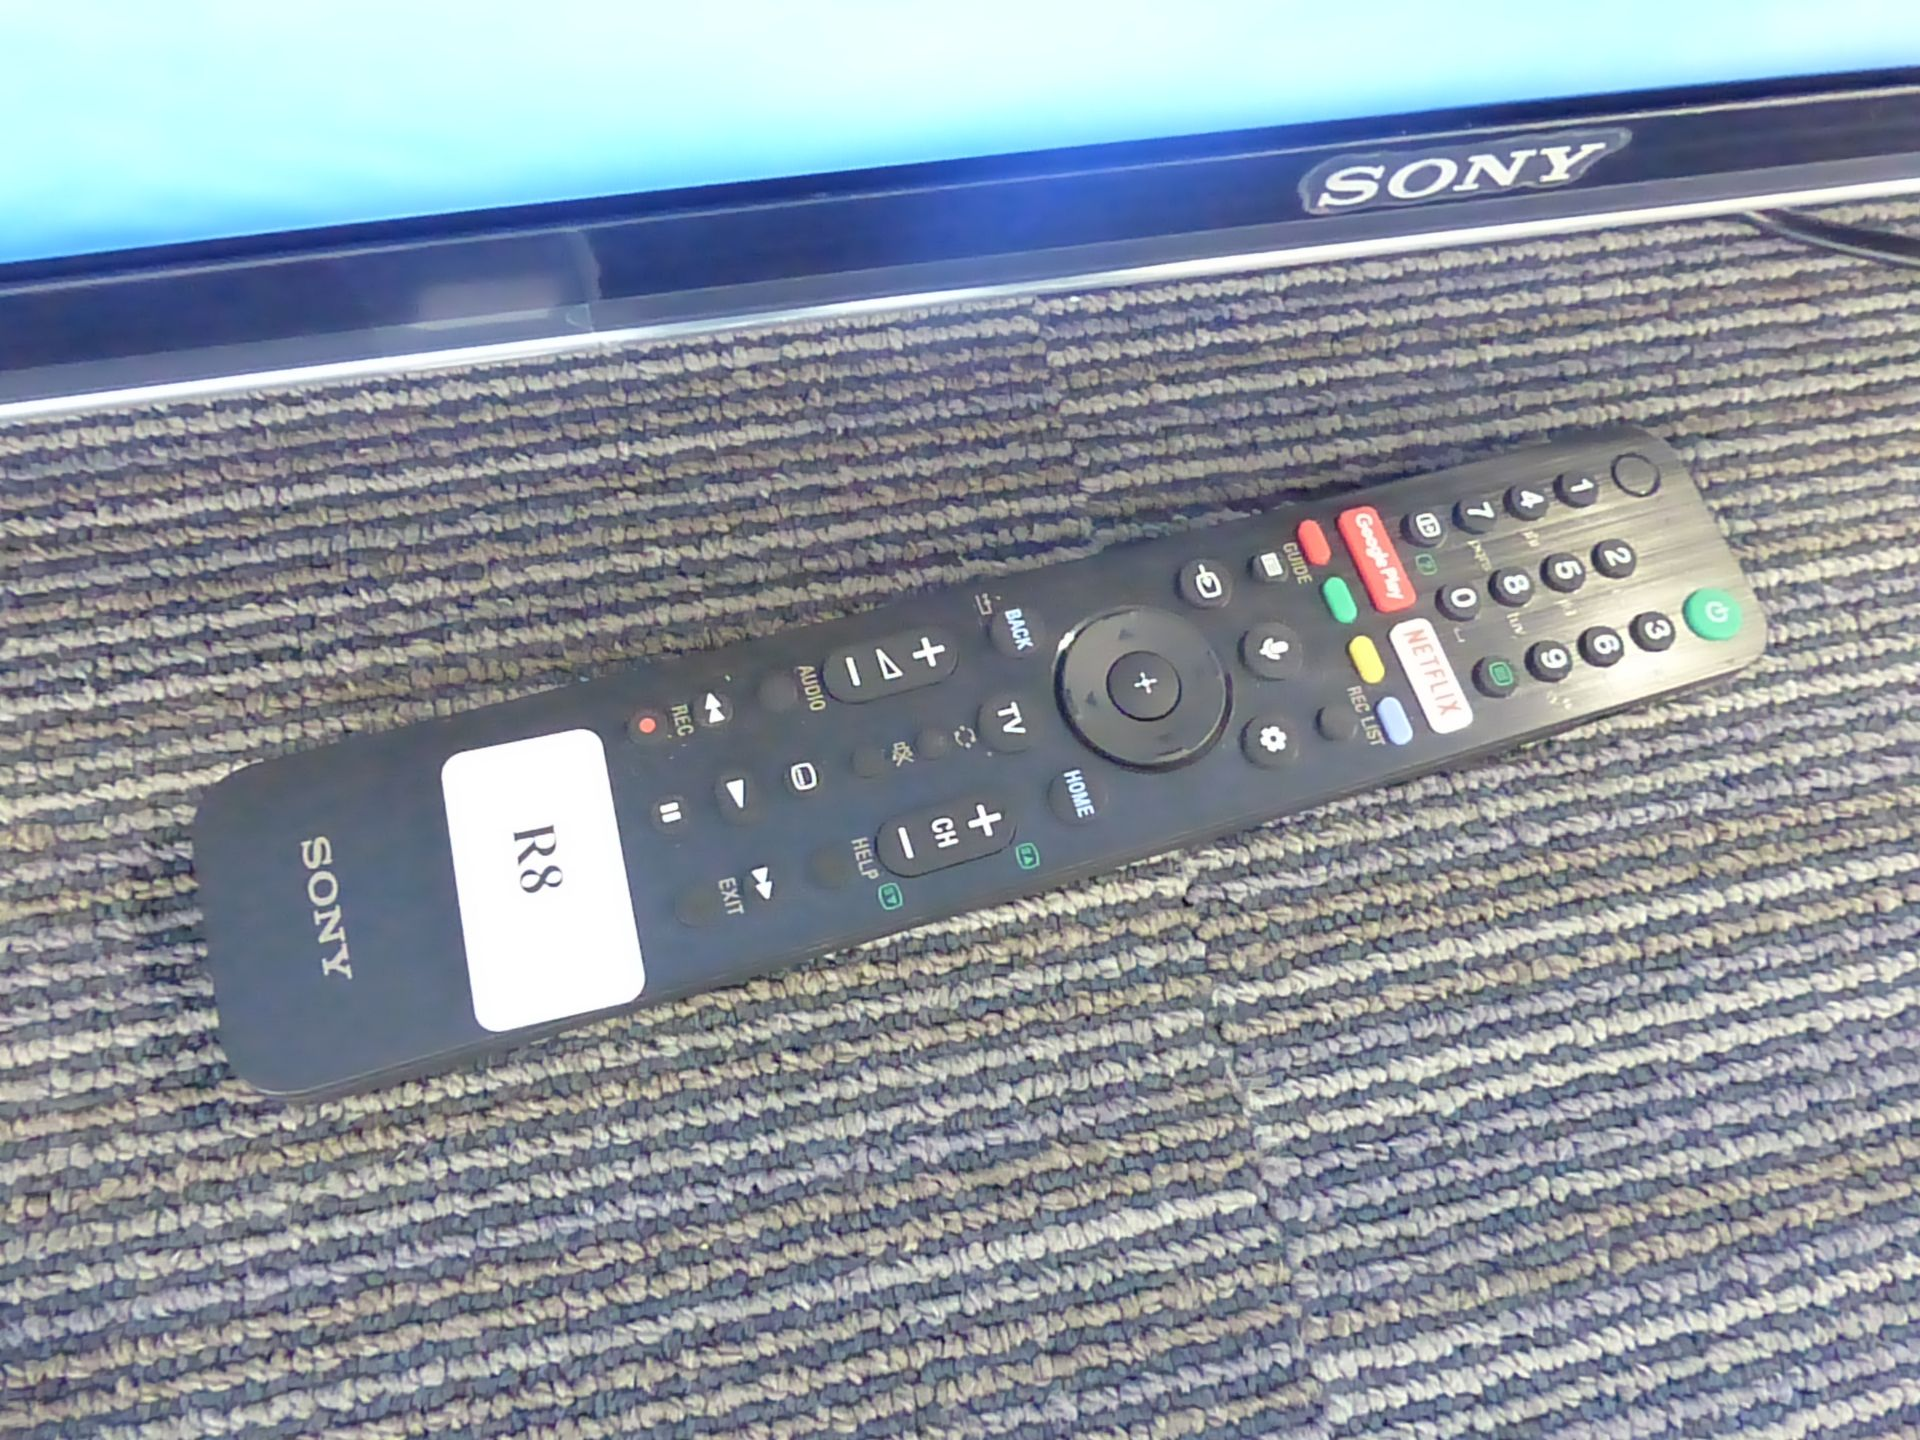 Sony 75'' 4K TV Model: KD-75XH9005, includes remote (R8) Screen has no visible damage, sound is - Image 2 of 2